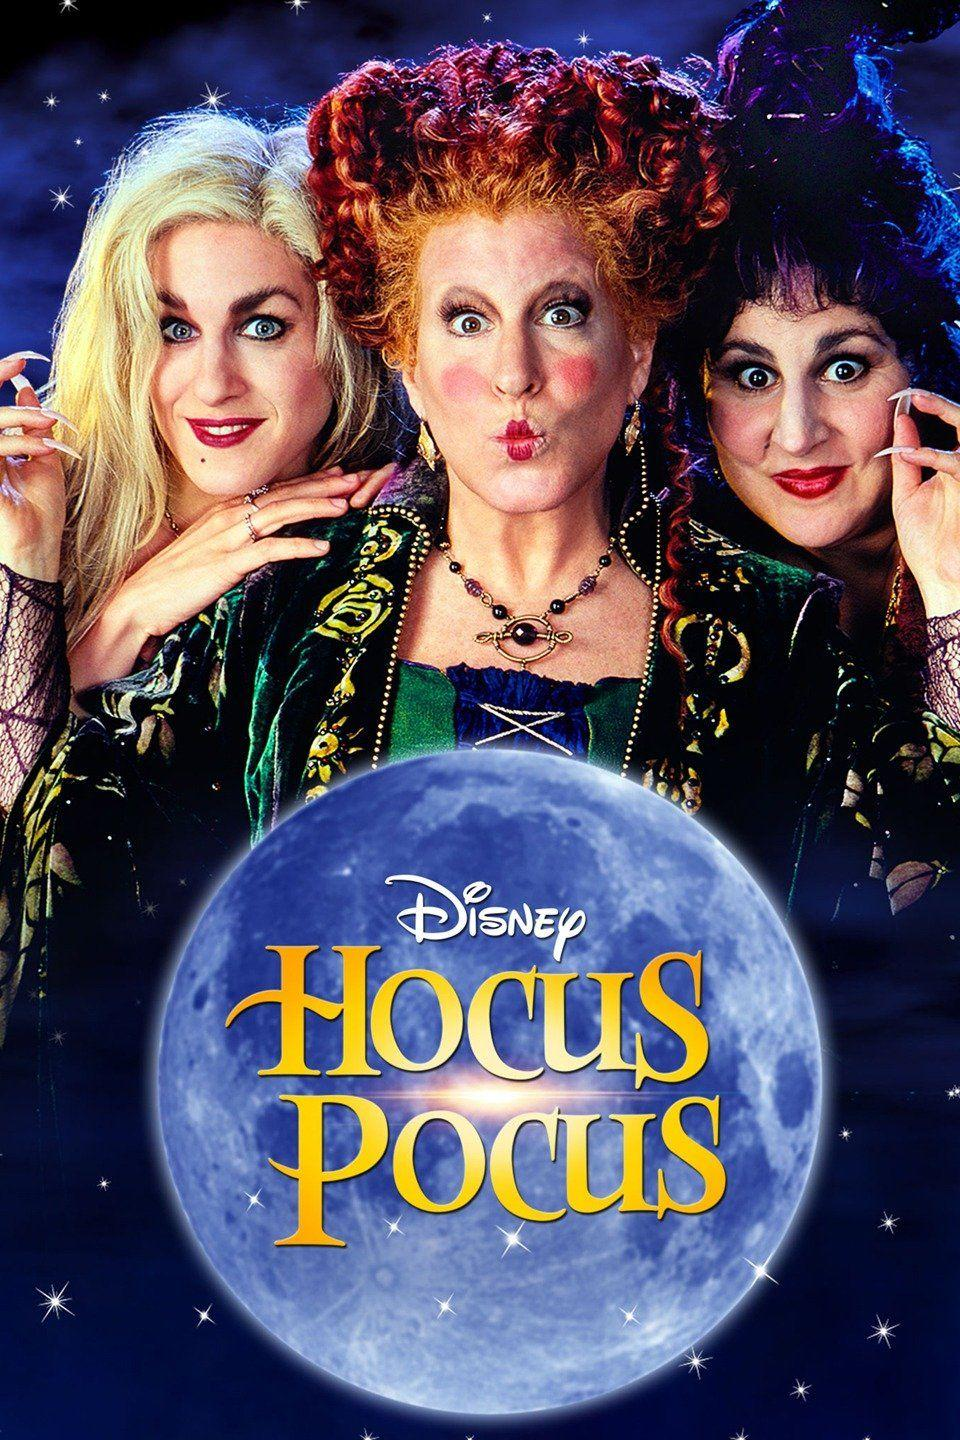 """Hocus Pocus""is just one of the movies available to stream on Disney Plus."